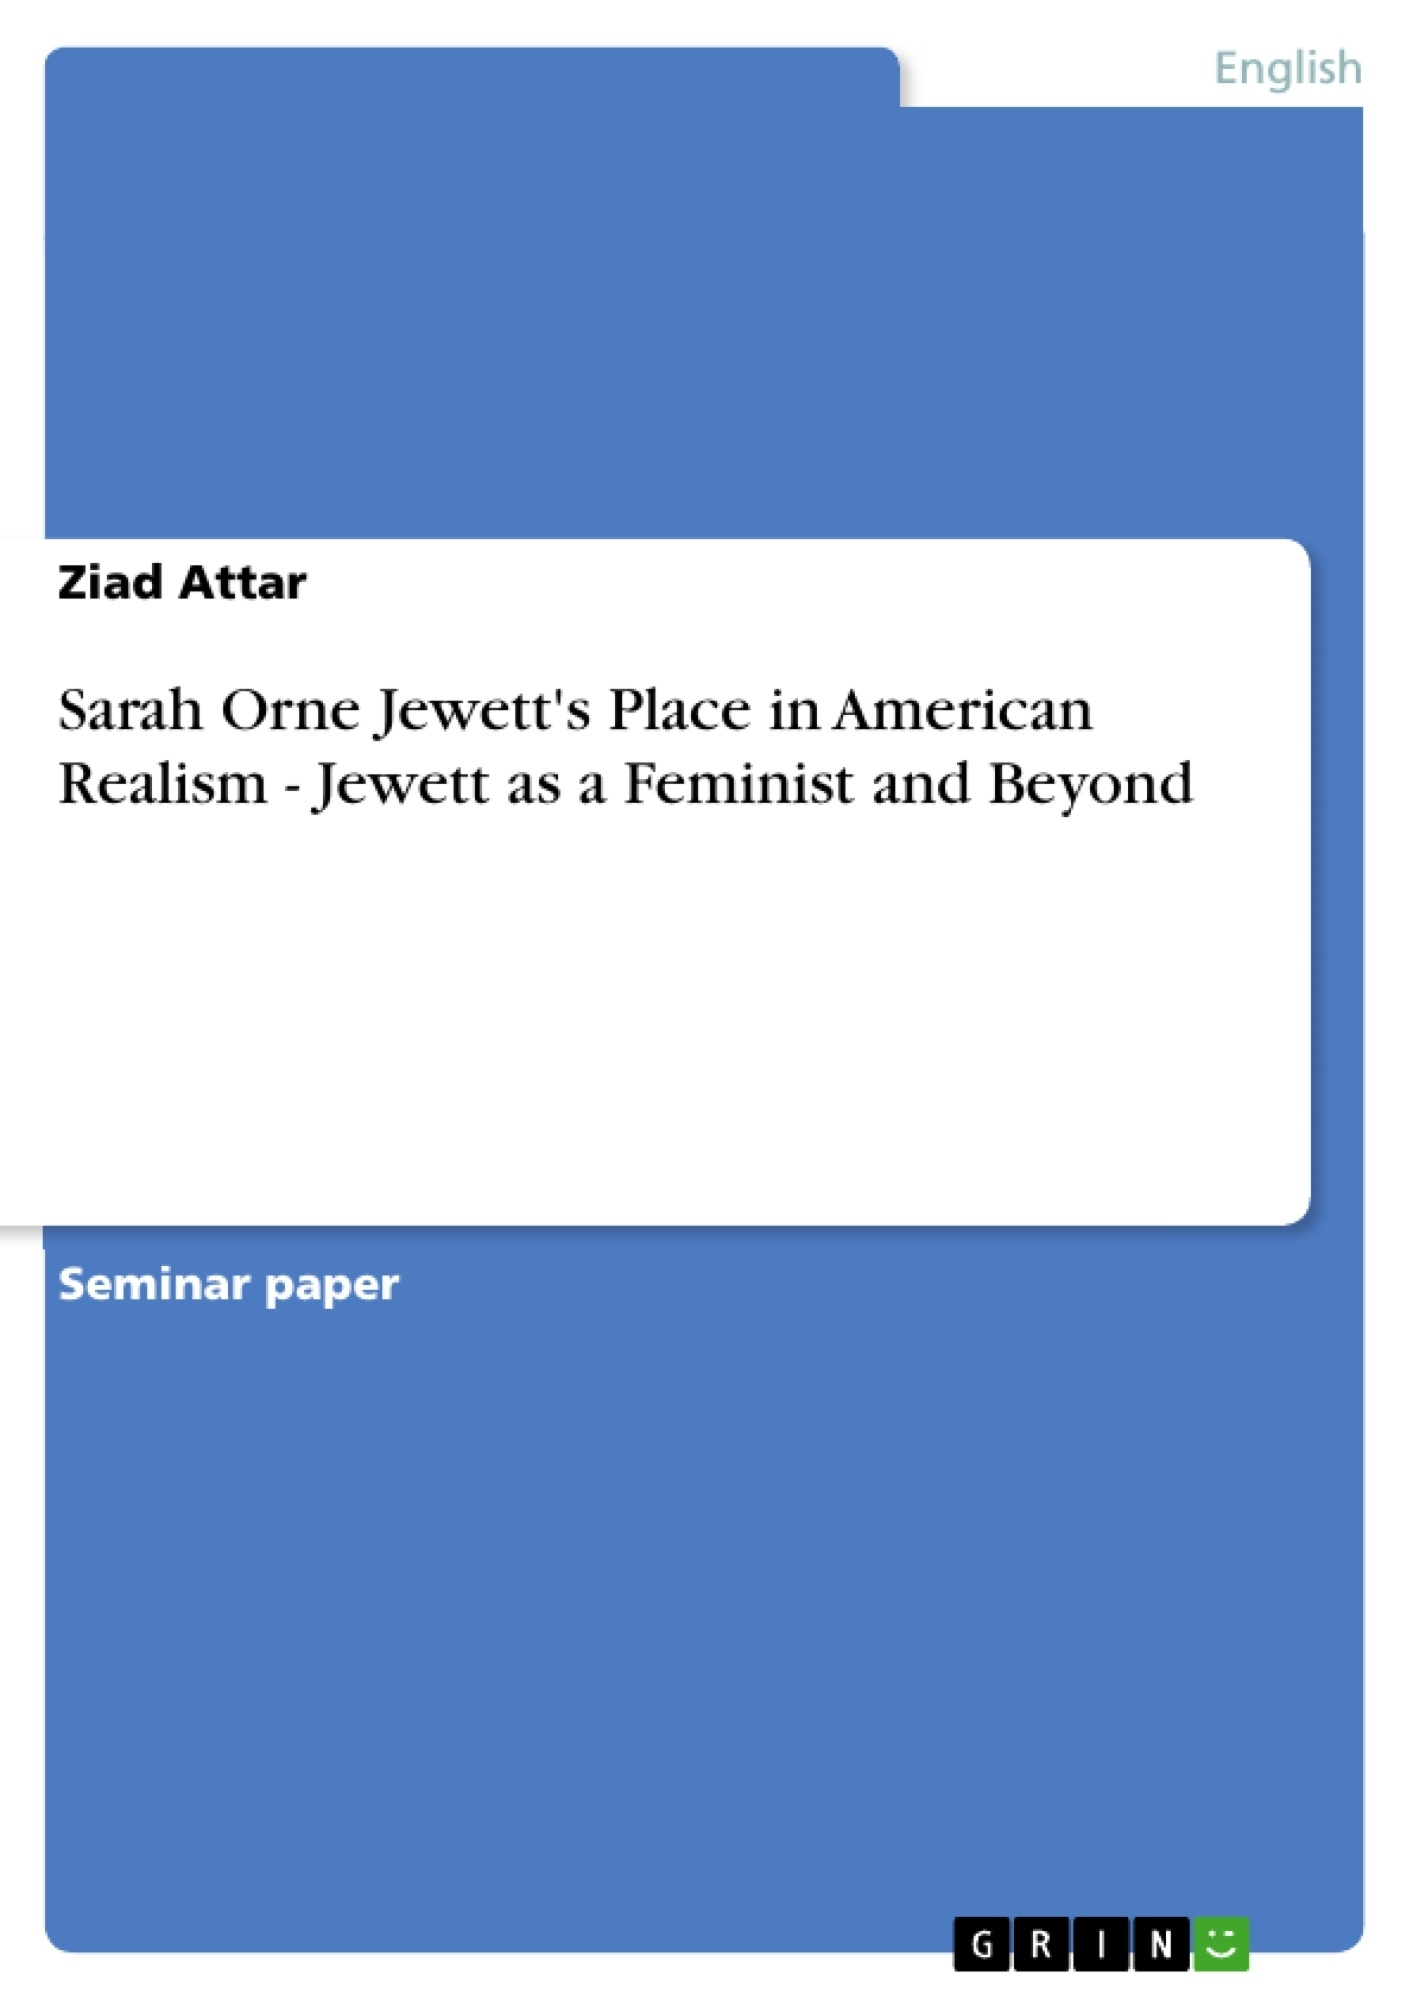 Title: Sarah Orne Jewett's Place in American Realism - Jewett as a Feminist and Beyond